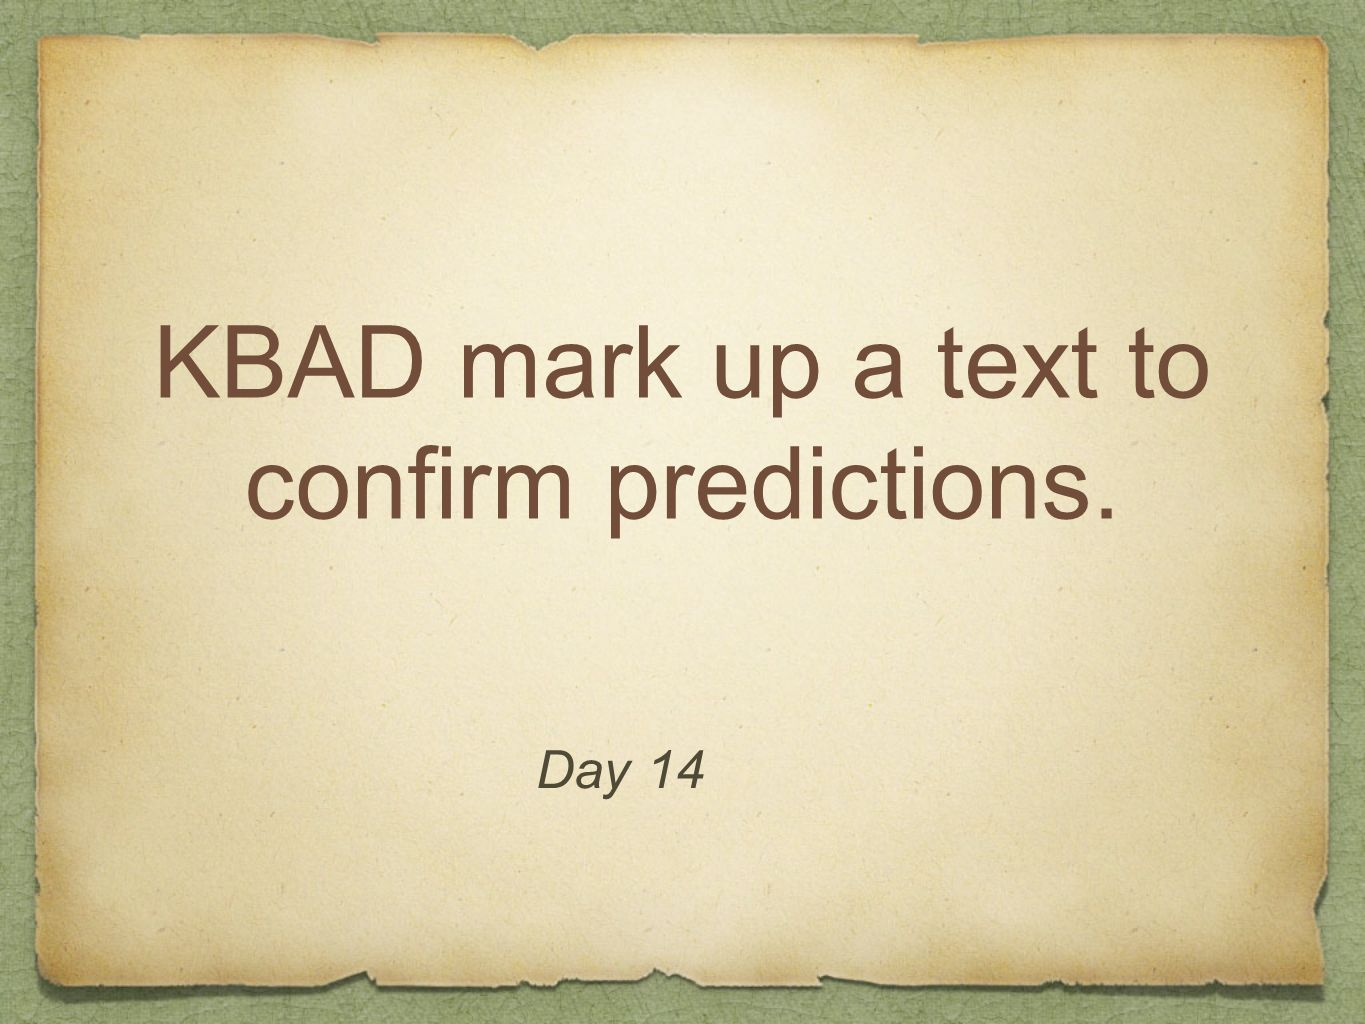 KBAD mark up a text to confirm predictions. Day 14